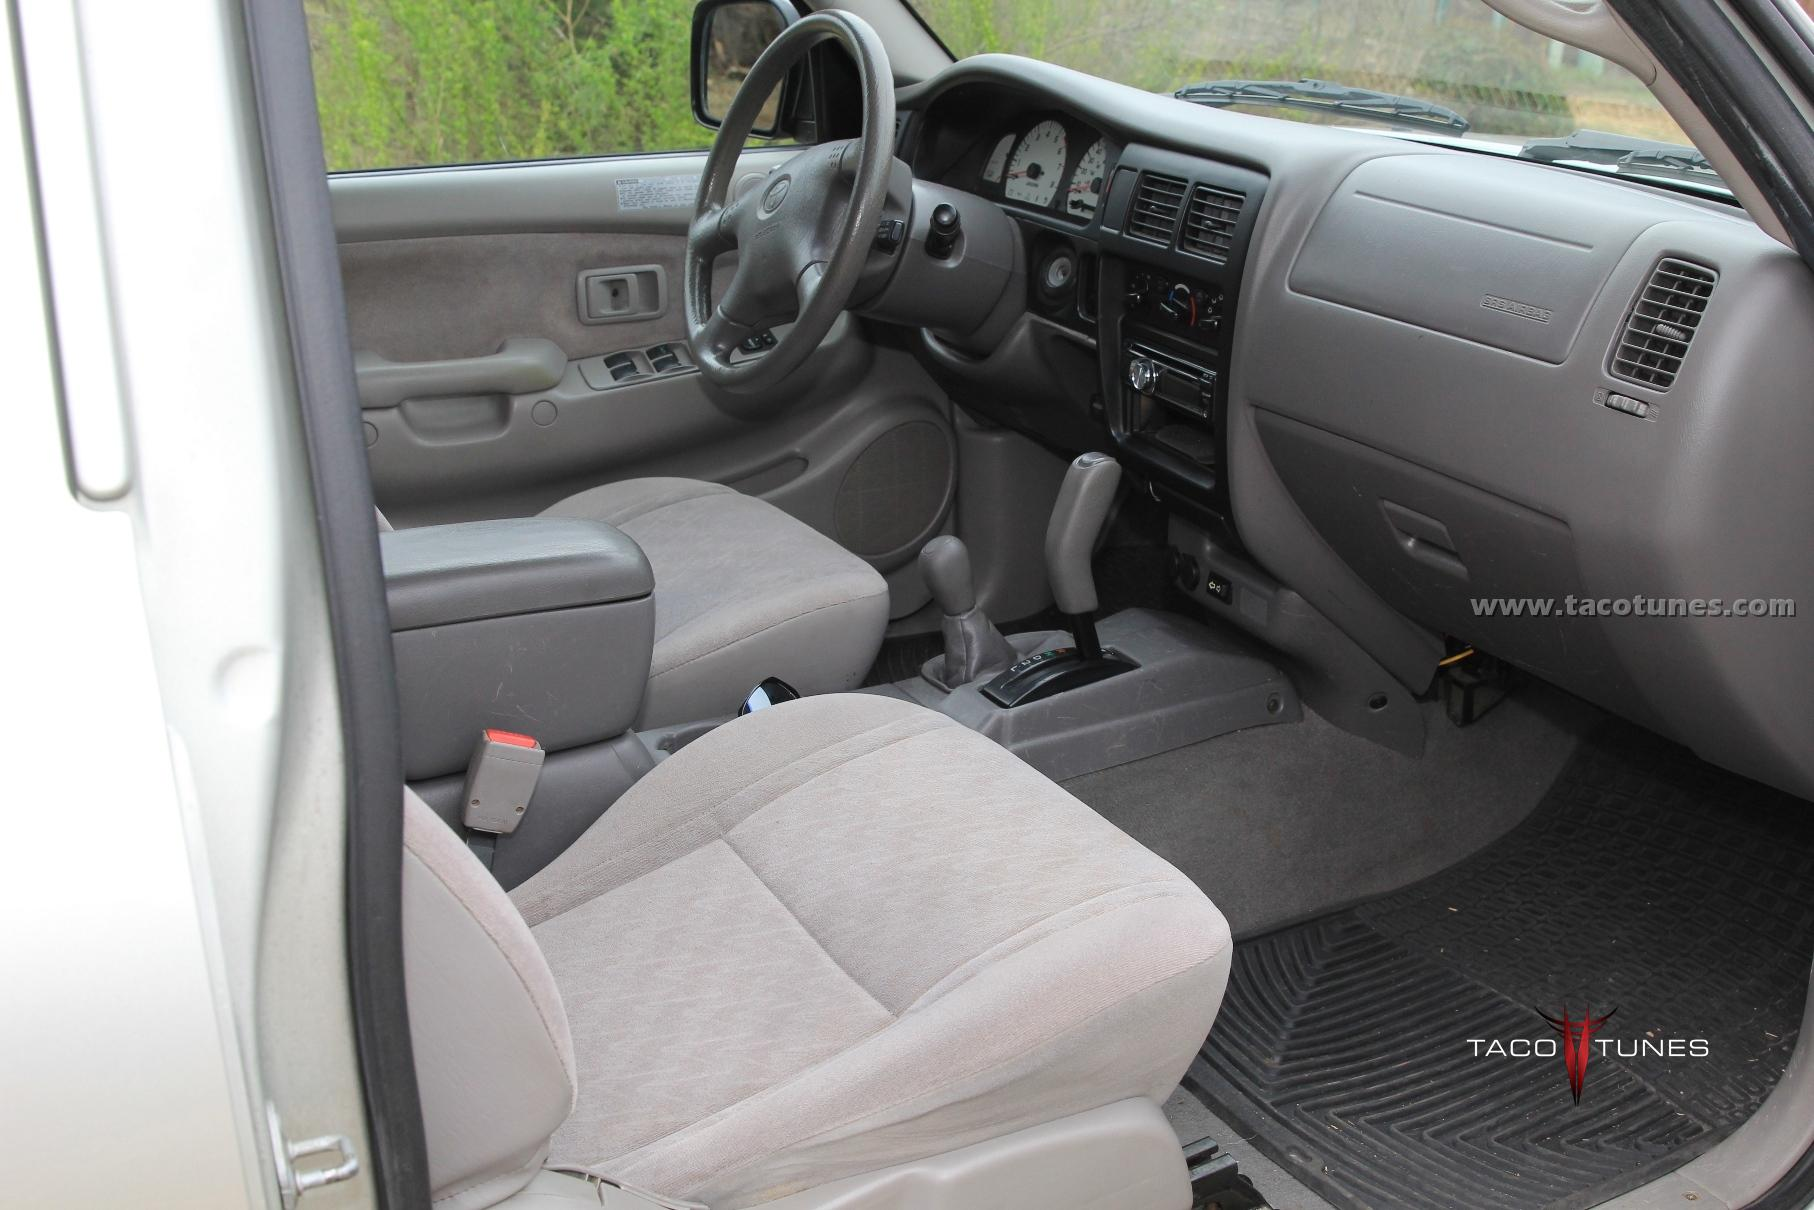 2003 toyota tacoma double cab 4x4 stereo installation. Black Bedroom Furniture Sets. Home Design Ideas